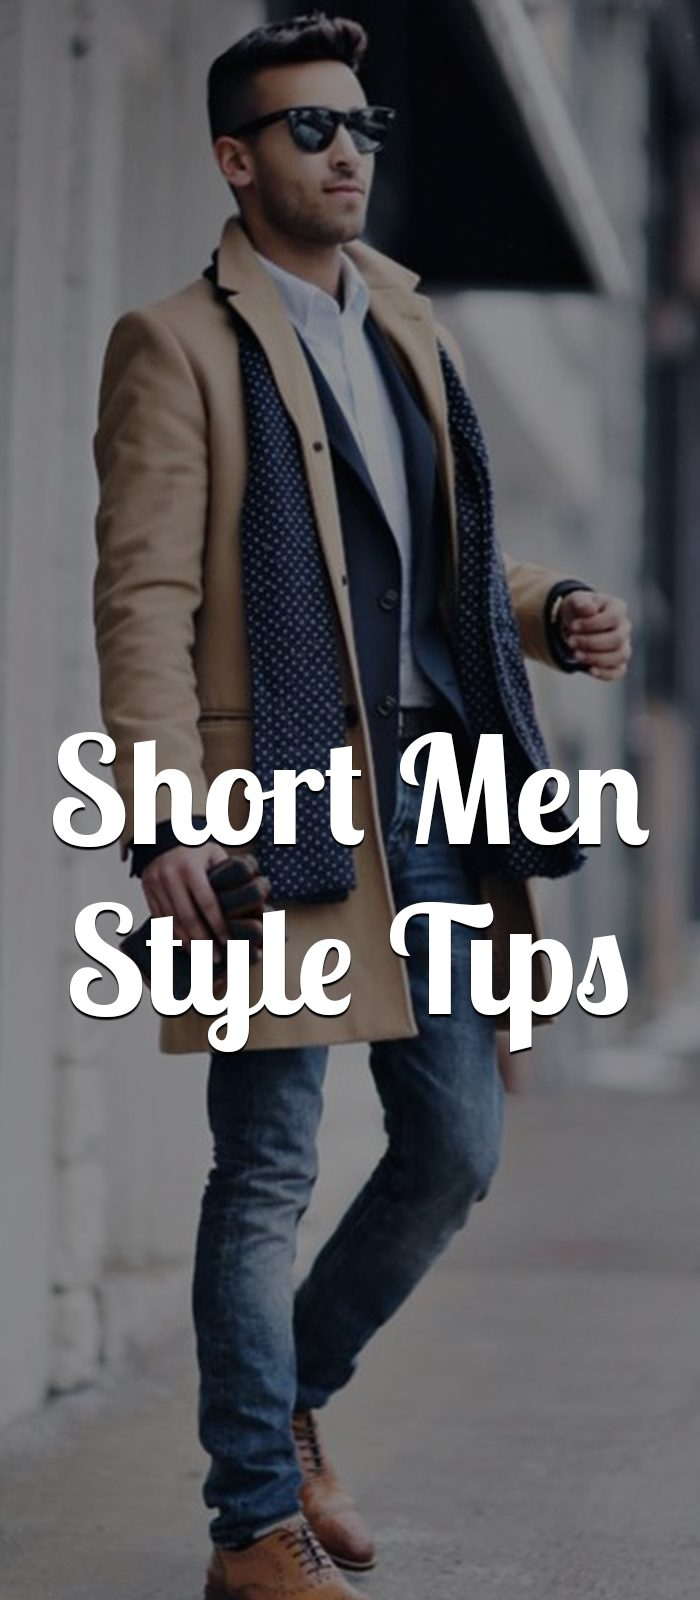 Short Men Style Tips